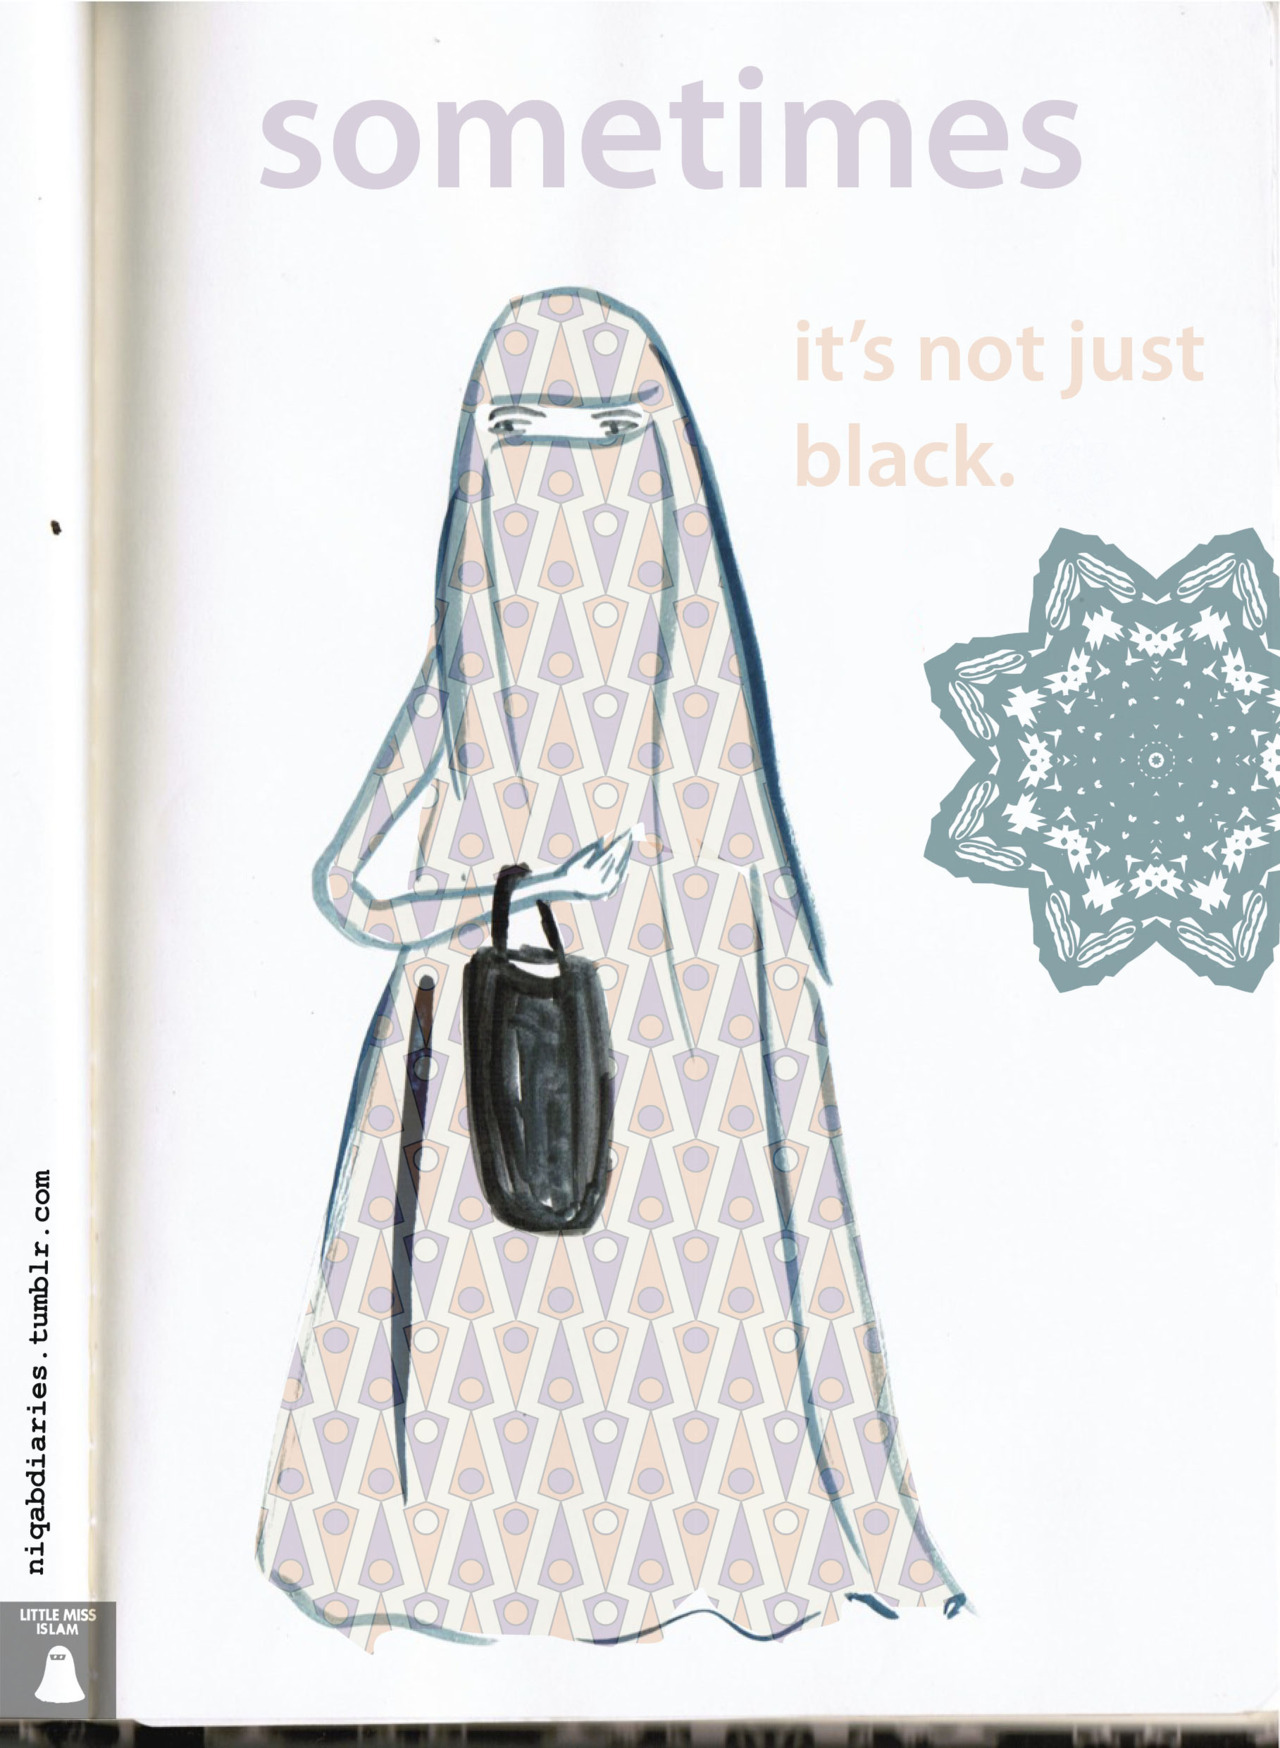 outburstm:  Sometimes its not just black, this Niqabi Diaries blog is so beautiful #niqab #illustration